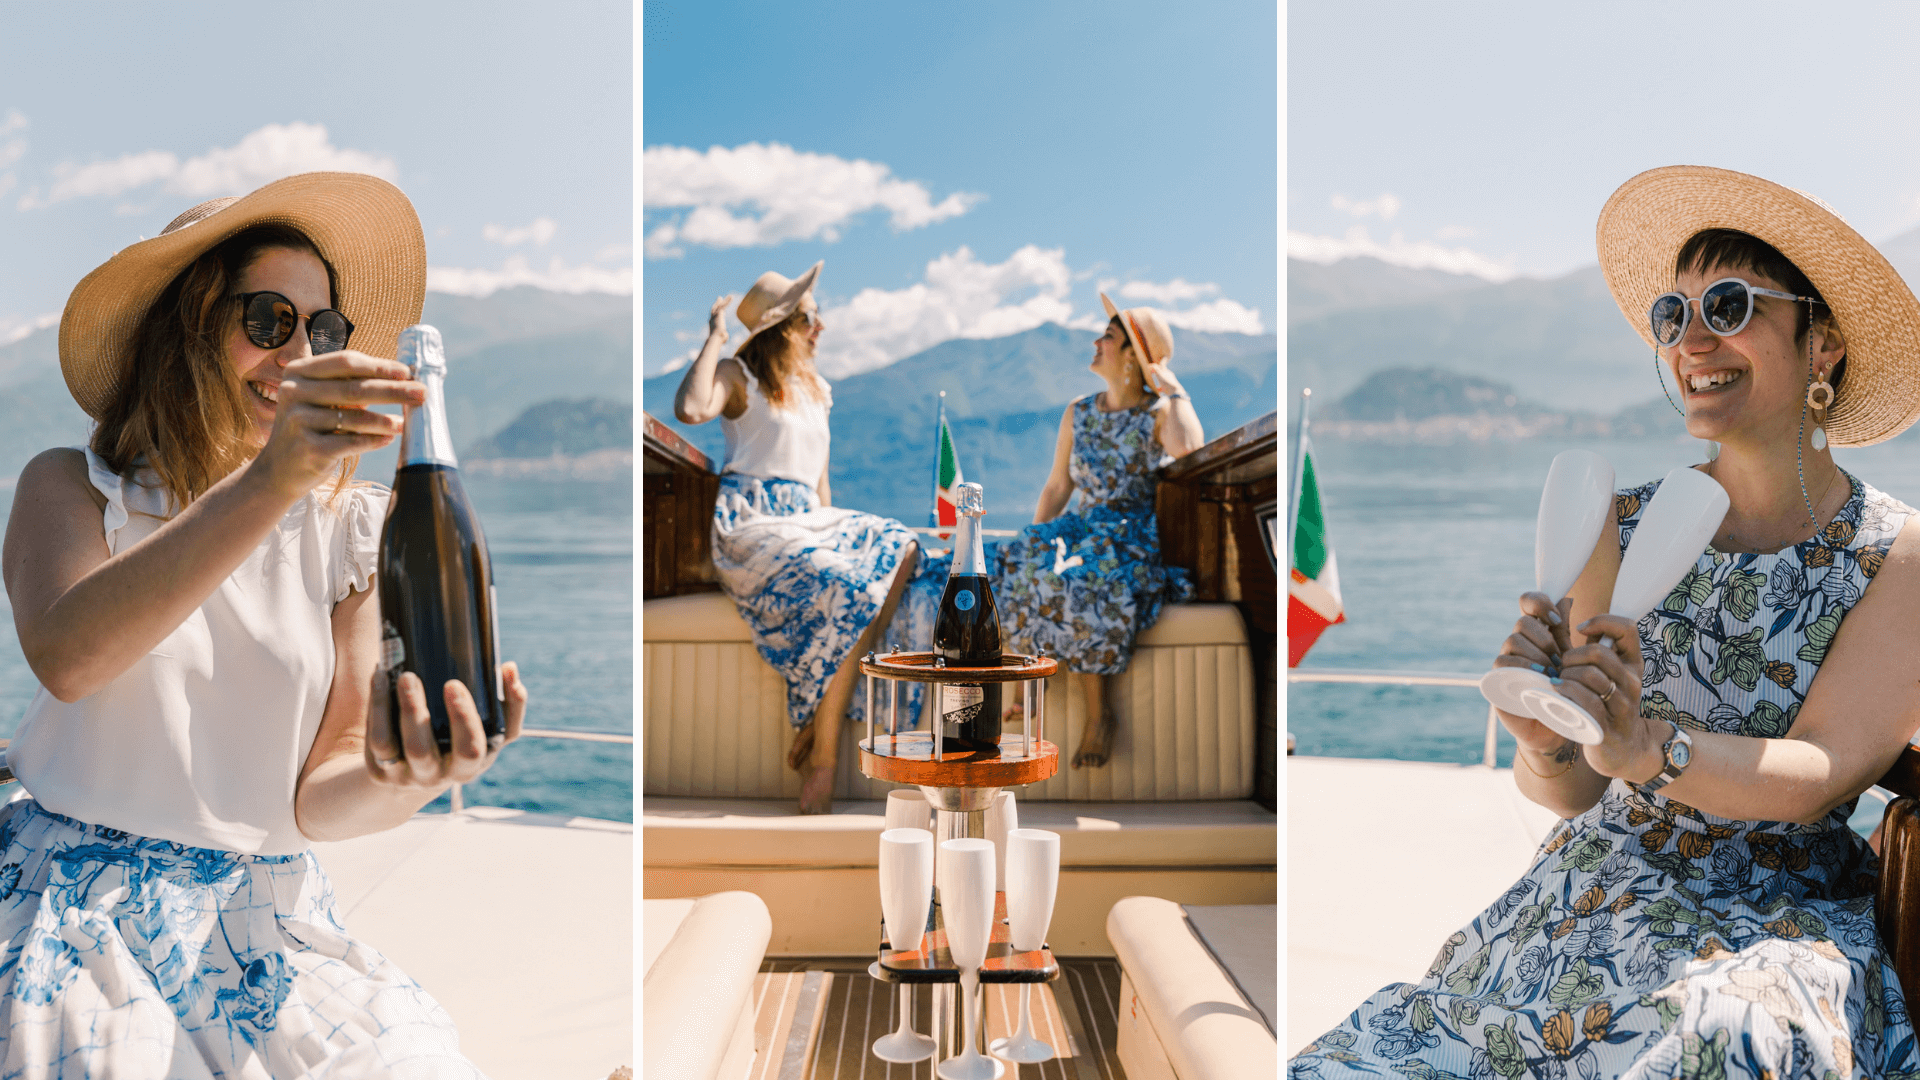 Celebrating your stay in Lake Como